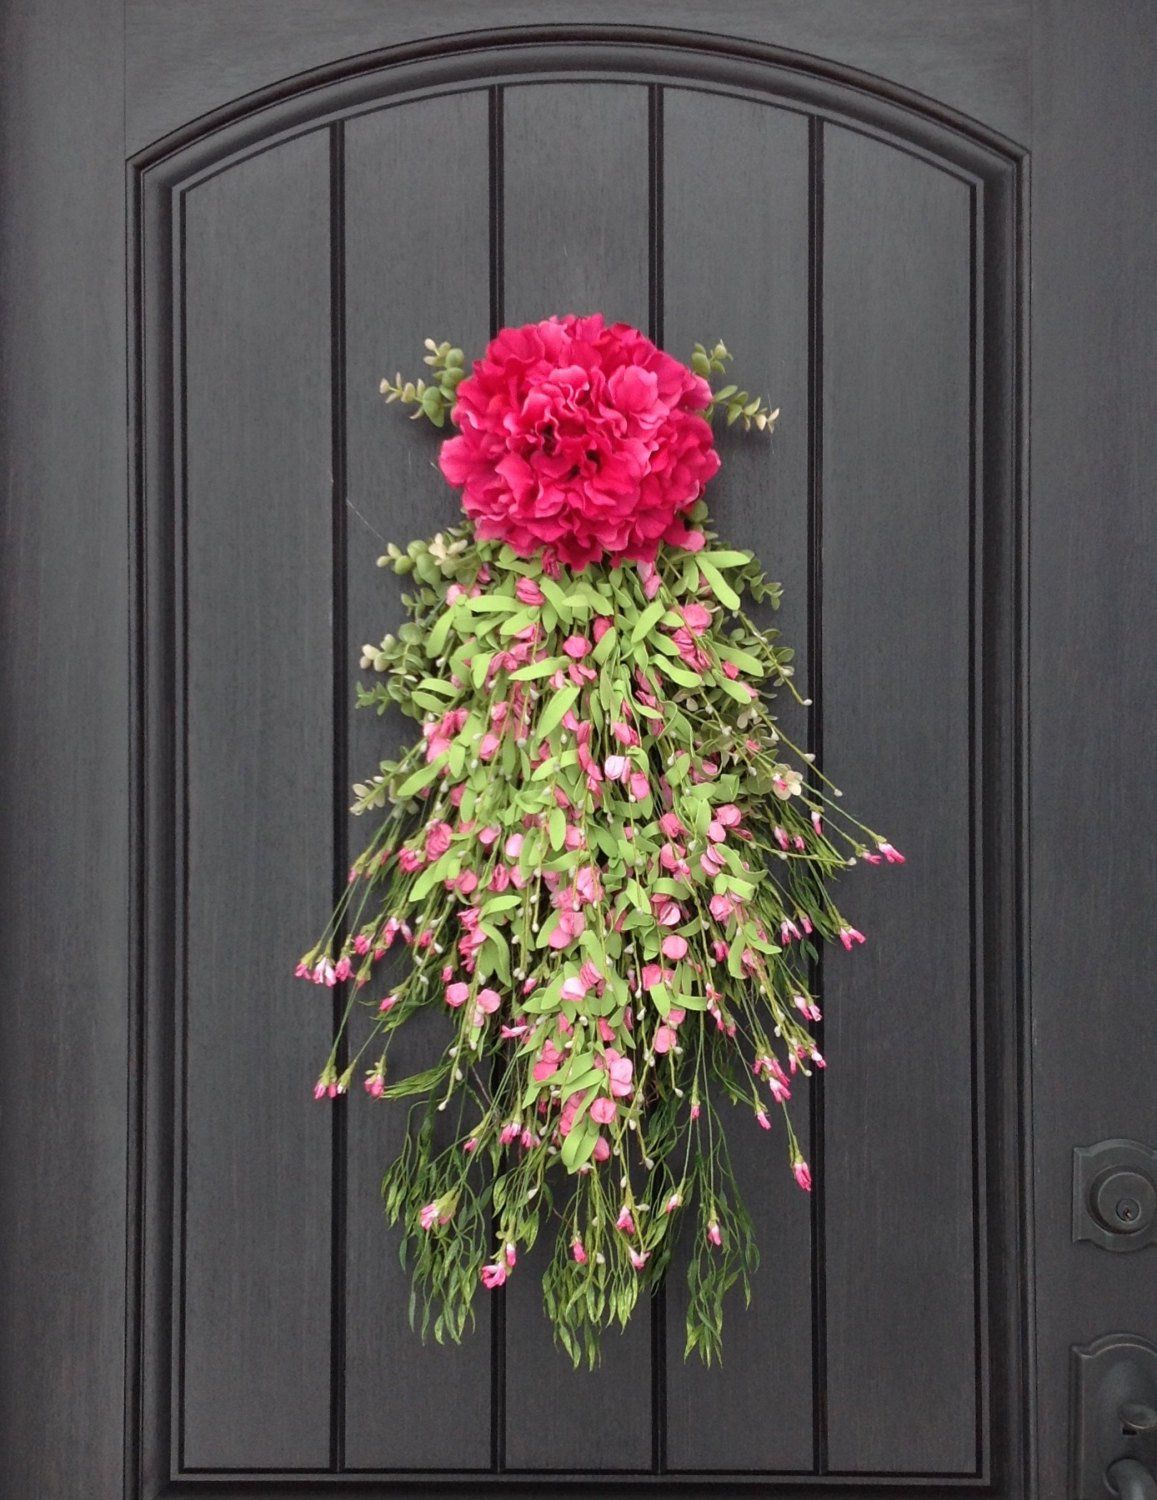 Great 15 Joyful Handmade Spring Wreath Ideas To Decorate Your Front Door